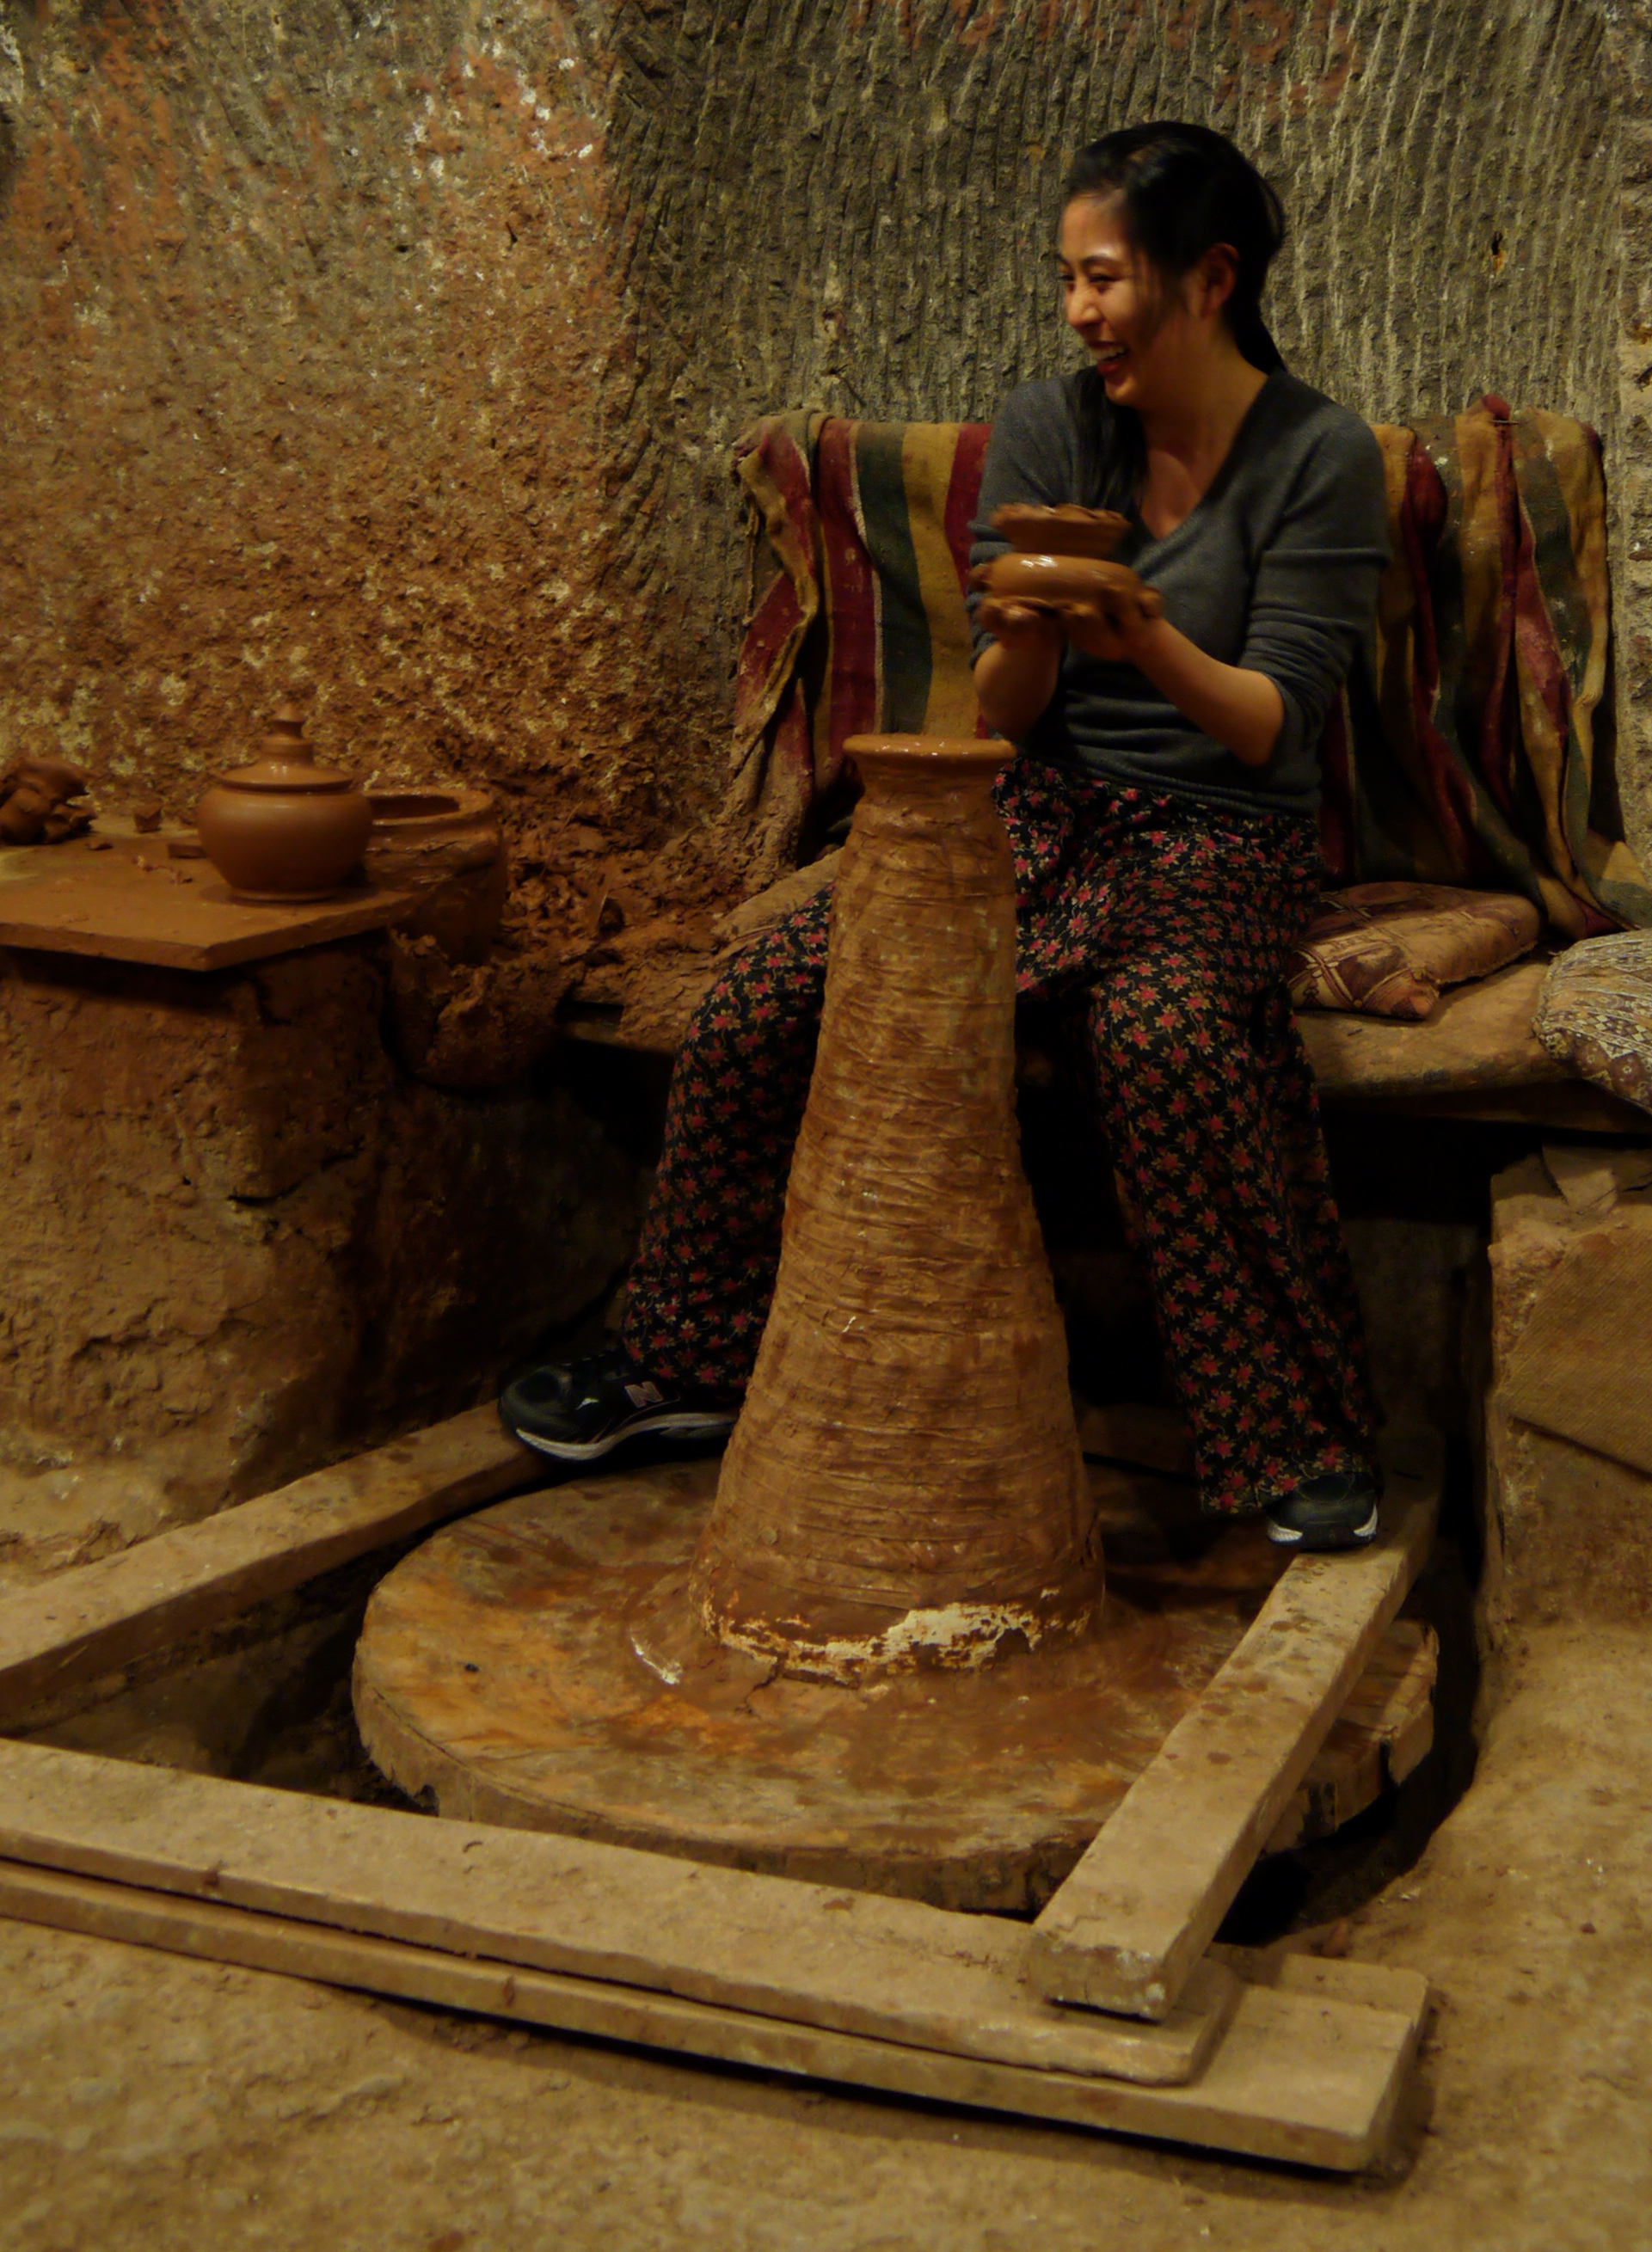 Figure 5. Jennifer working on red clay pottery